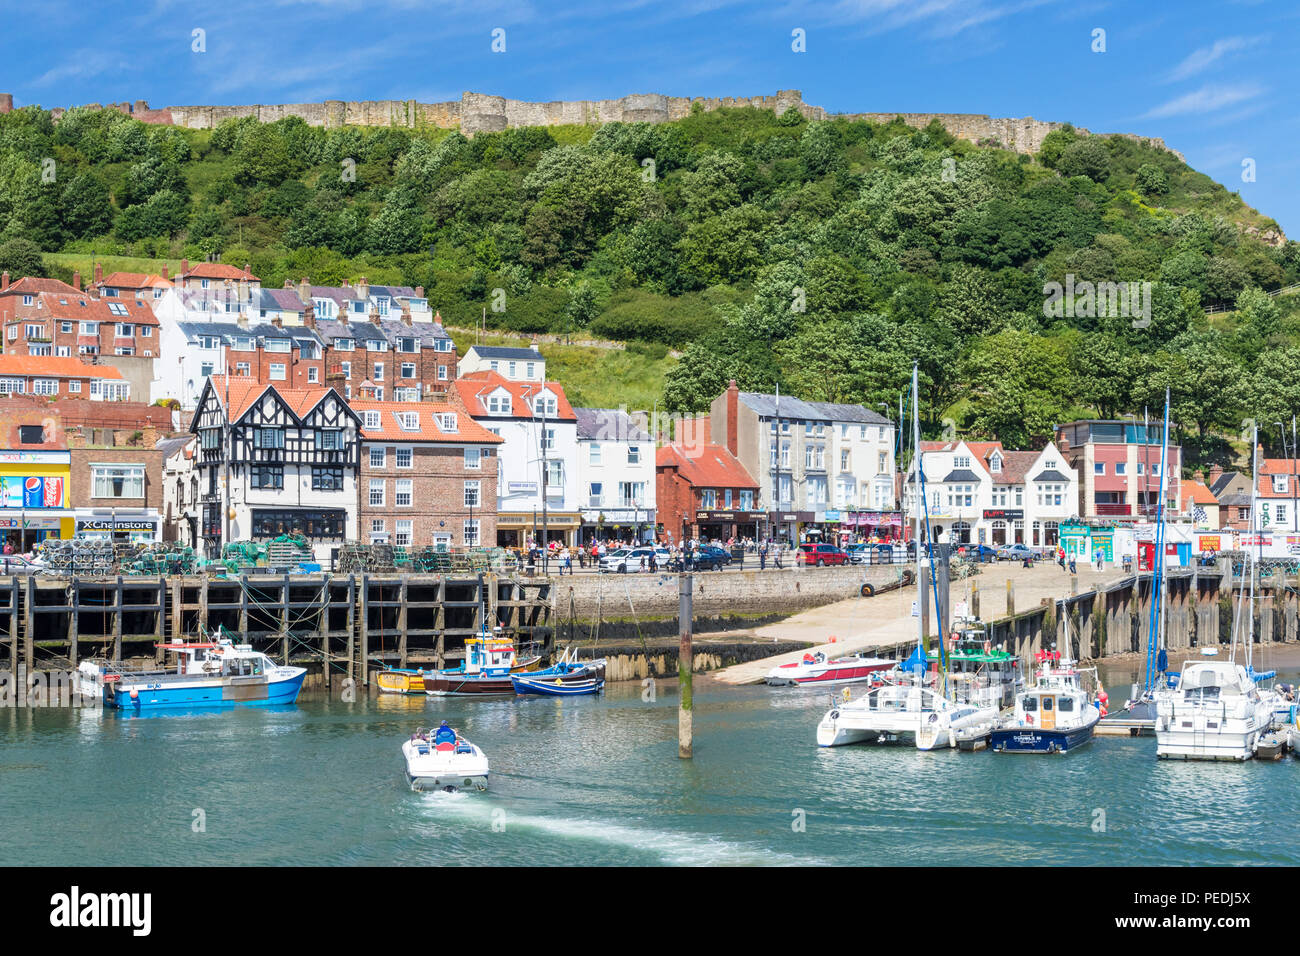 scarborough harbour and marina in south bay scarborough uk yorkshire north yorkshire scarborough england uk gb europe - Stock Image